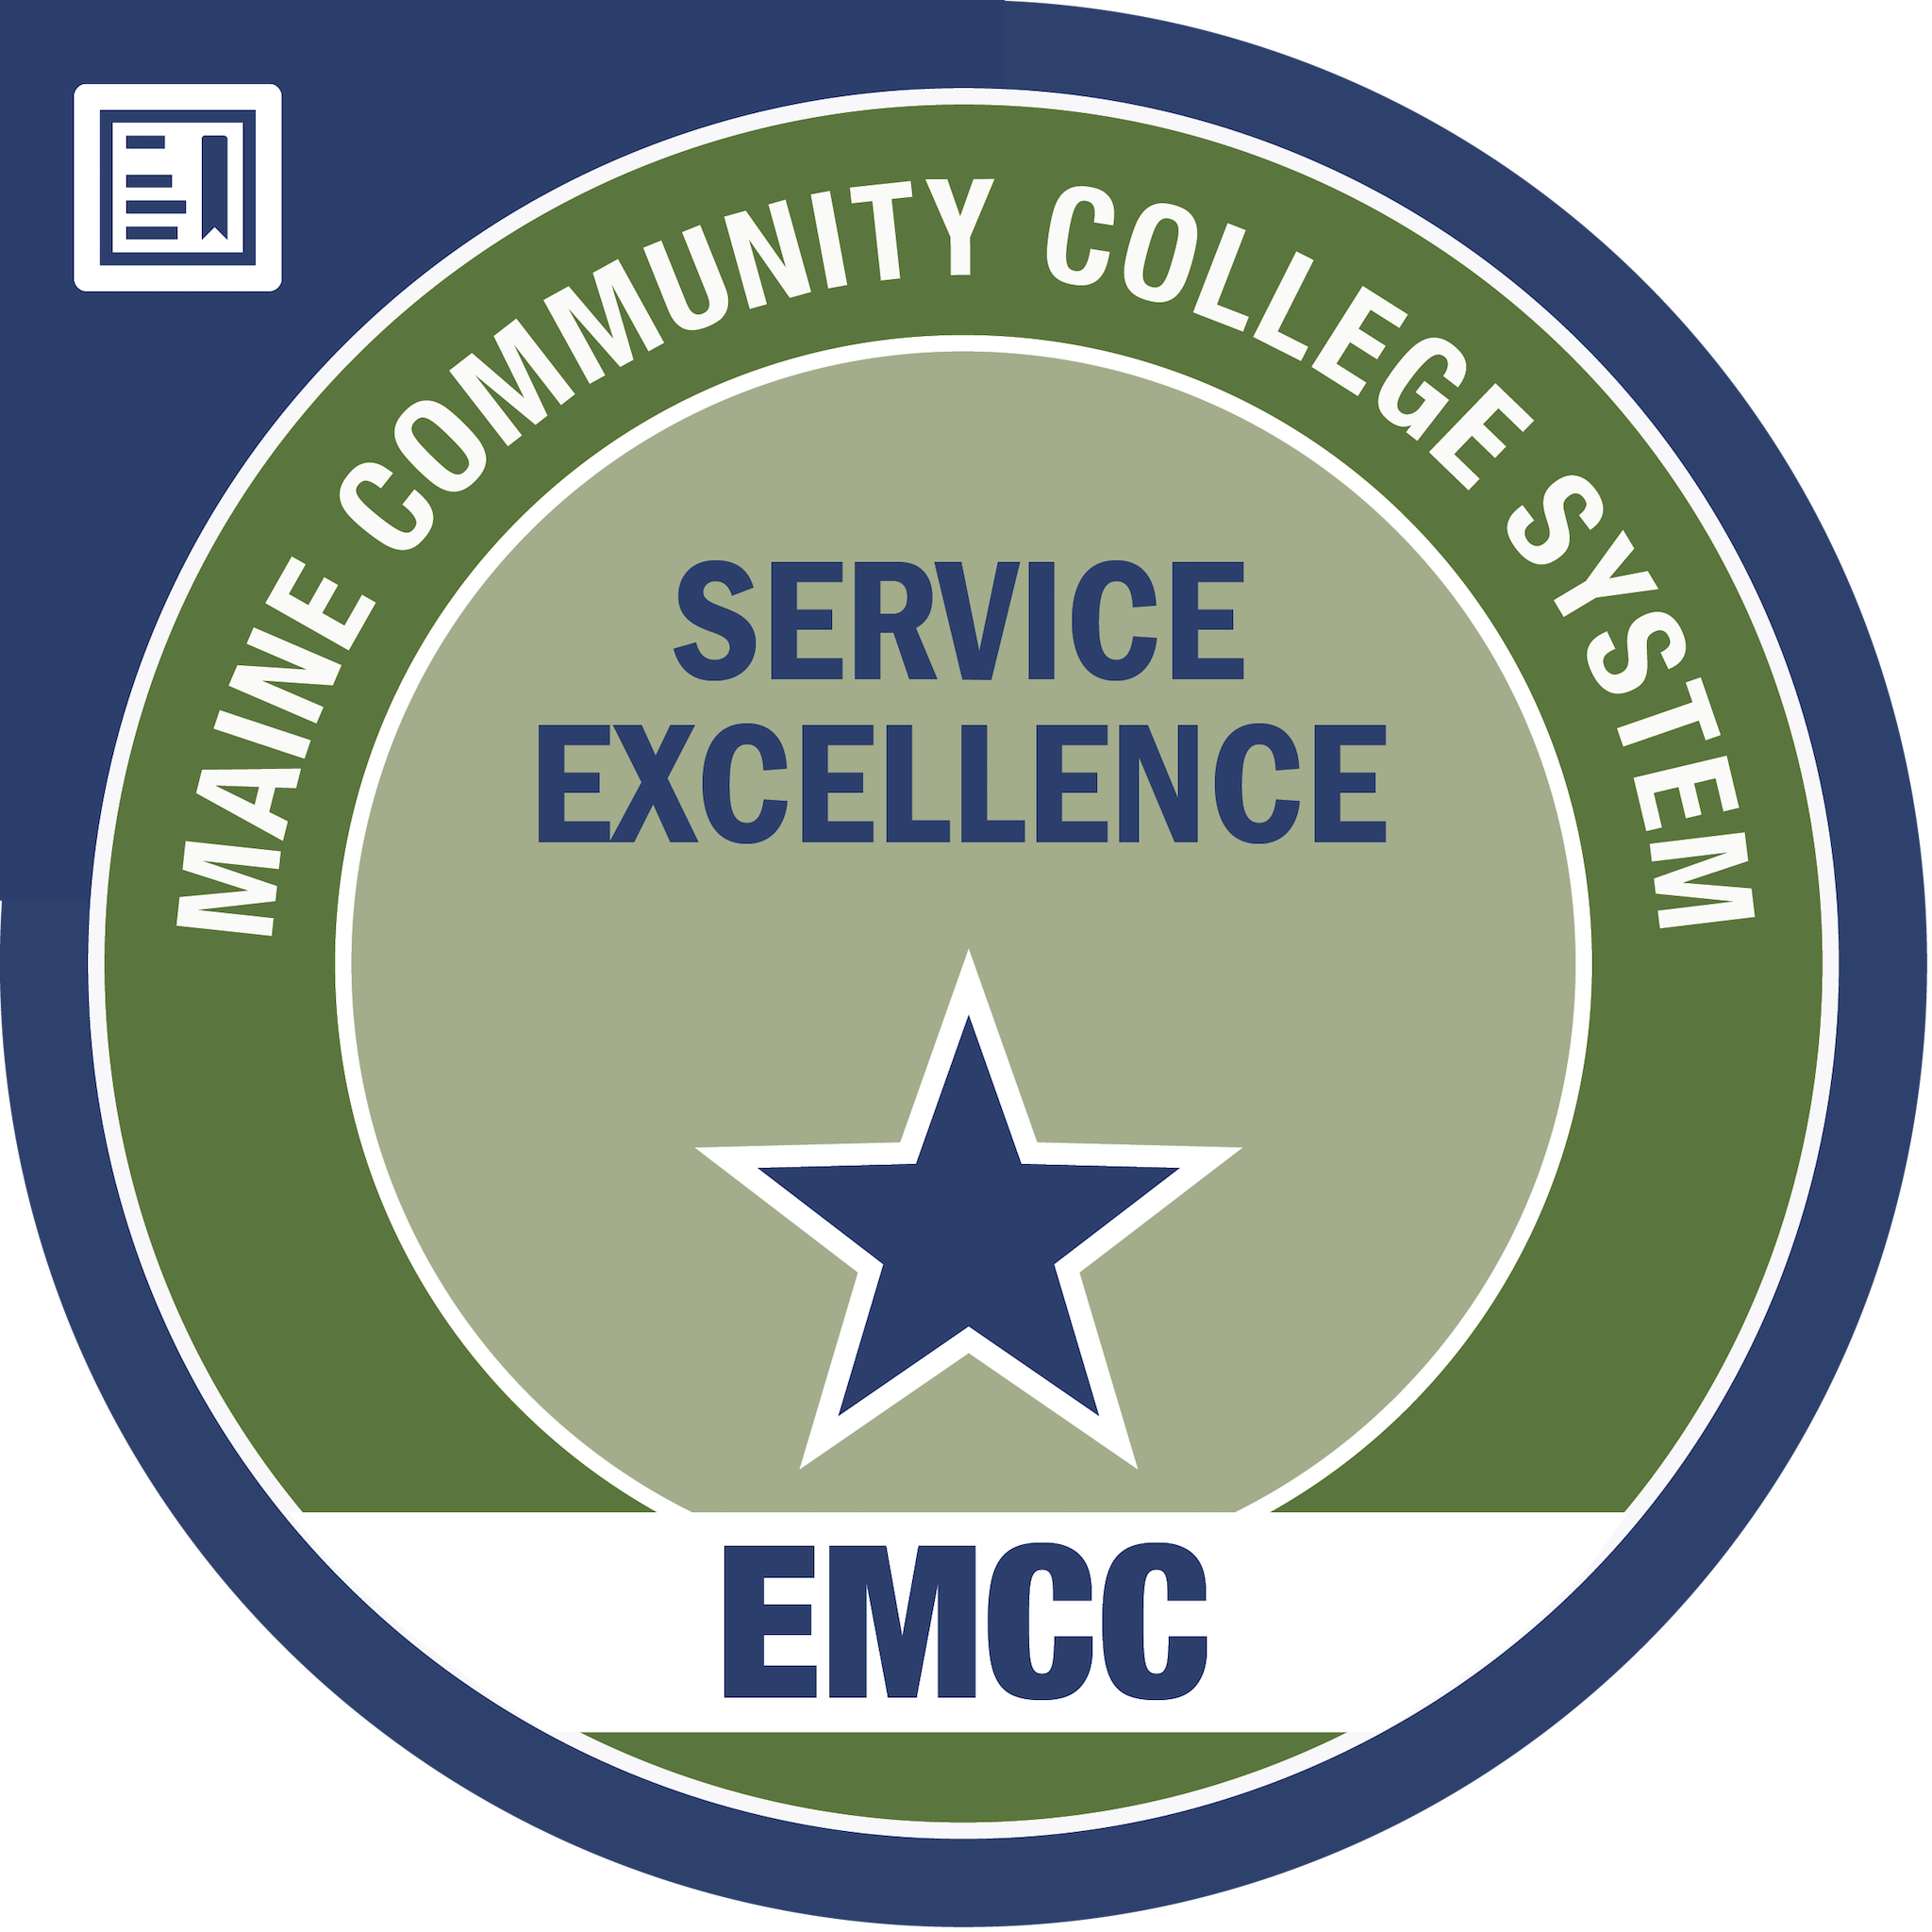 EMCC Service Excellence